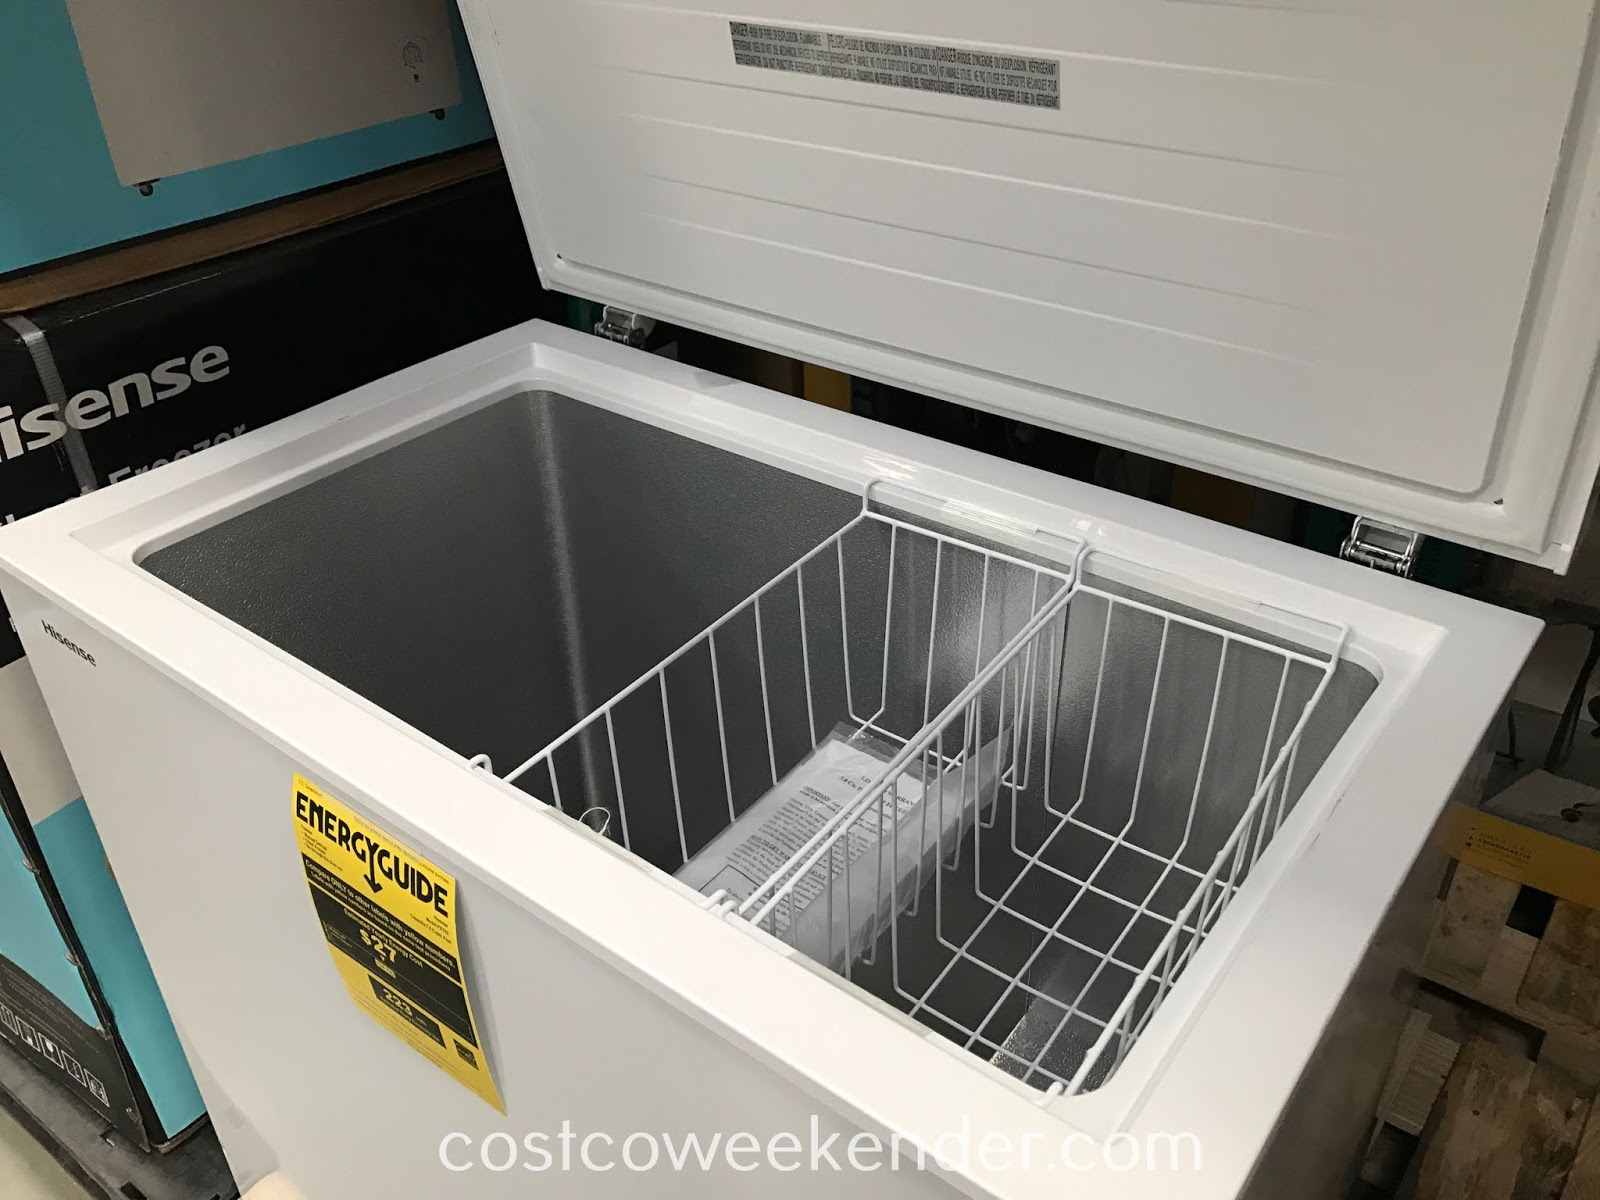 Costco 1214150 - Preserve additional food or have more ice on hand with the Hisense FE703 Chest Freezer